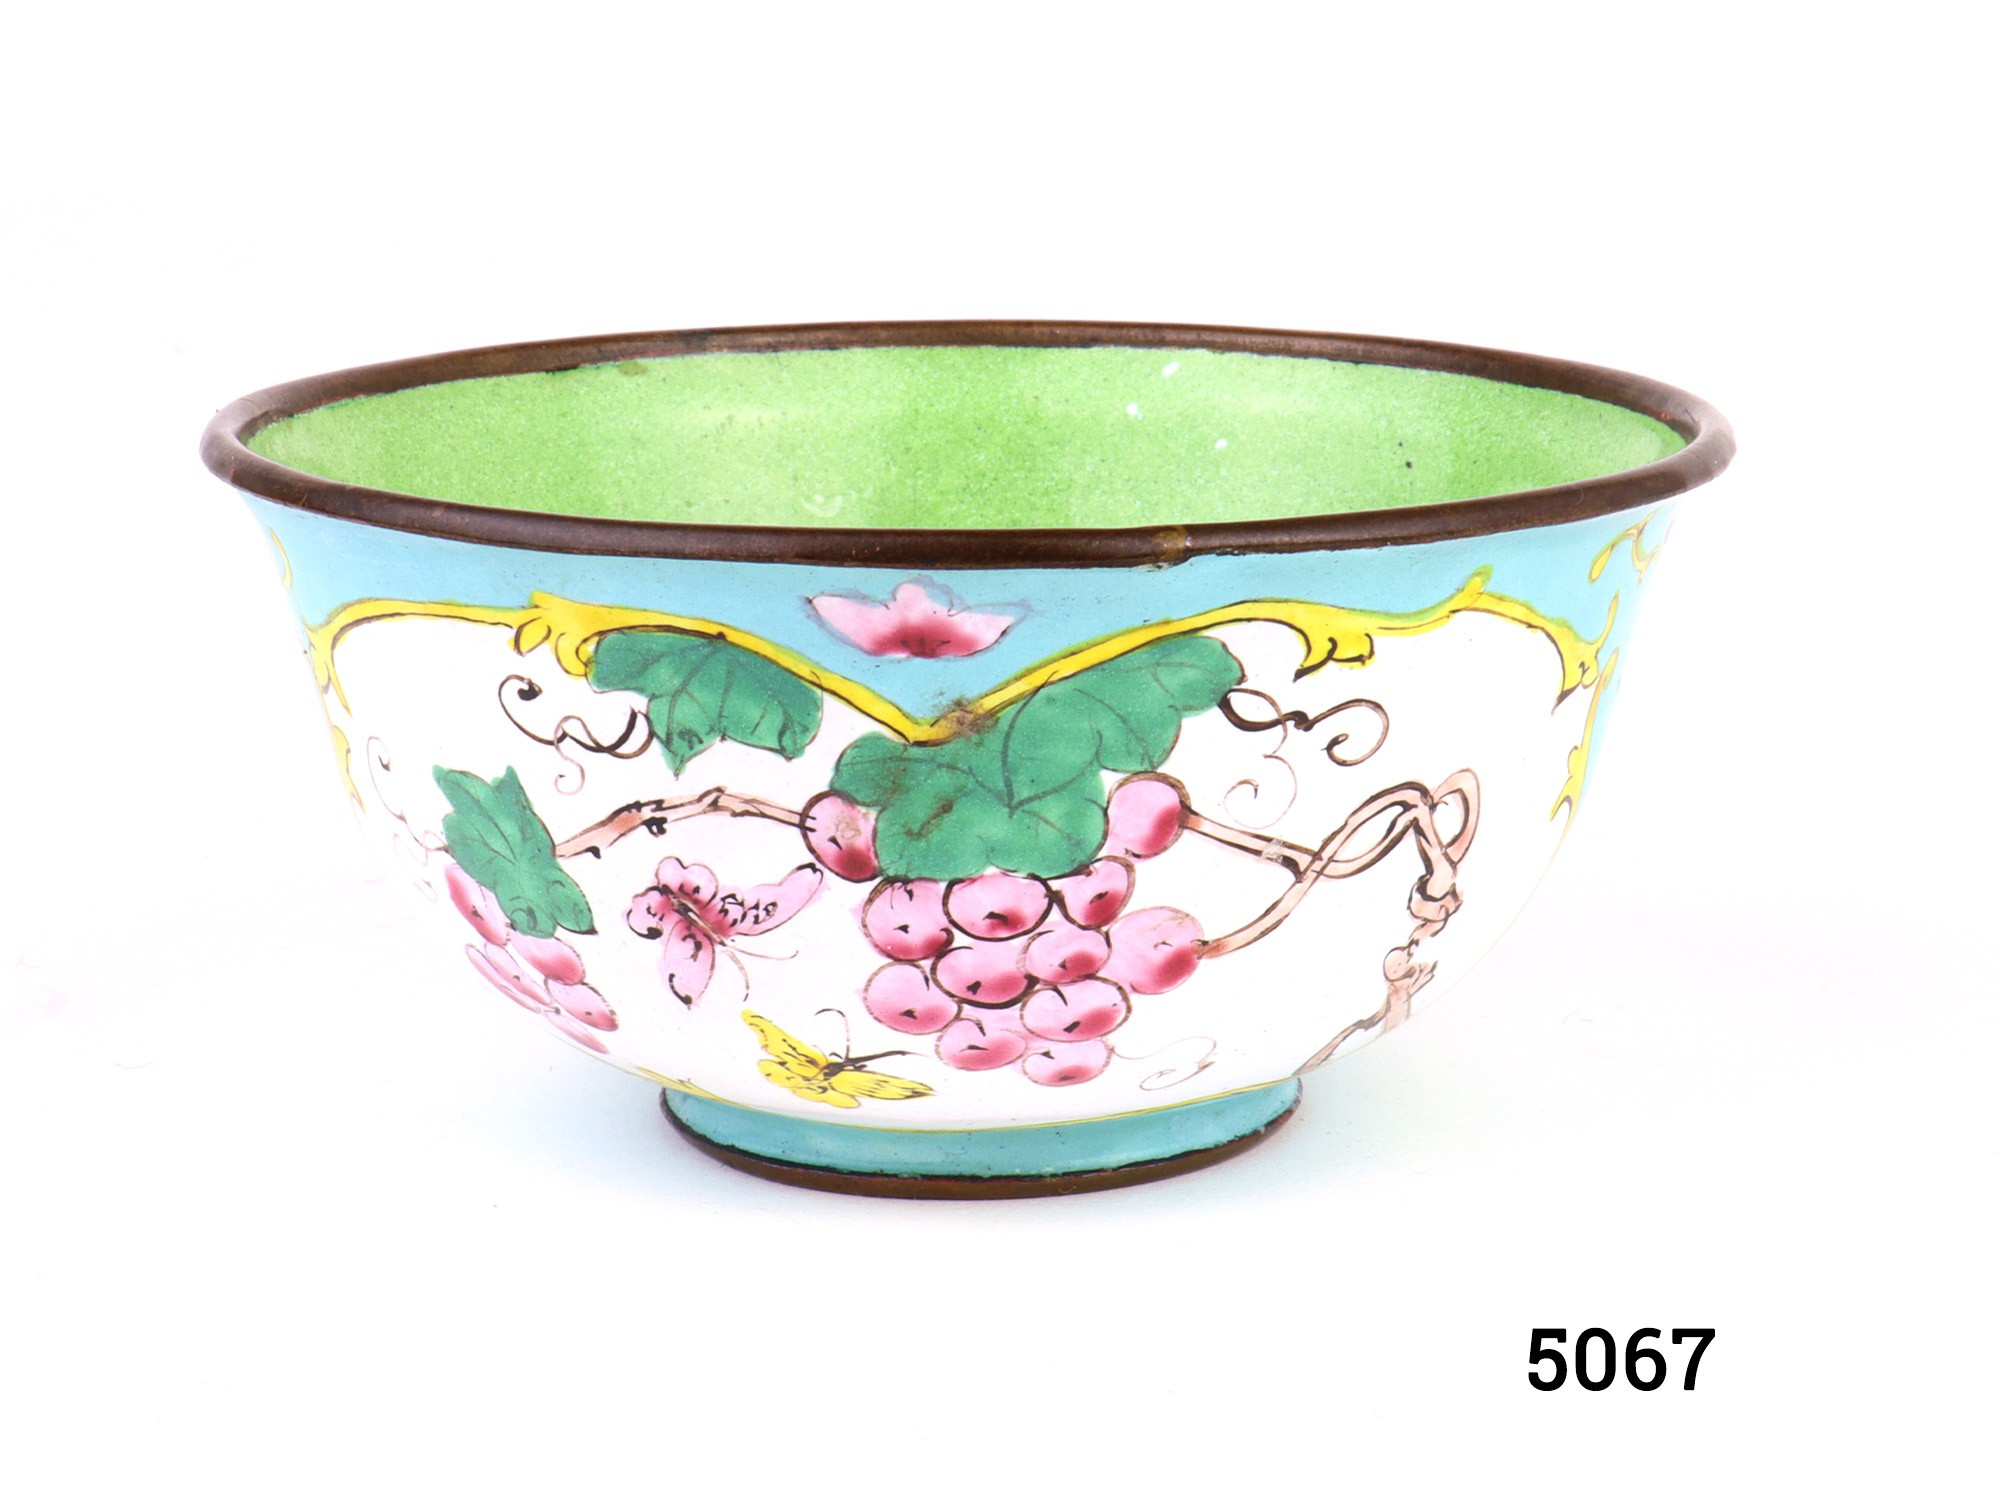 Vintage enamel cloisonne bowl with pale blue exterior decorated with pink grapes with butterflies and lotus flowers with kingfisher. Light green bowl inner decorated with ripening figs Measures 42mm in diameter at base and 100mm across the top Main photo of side view of bowl from the grapes and butterflies decoration side